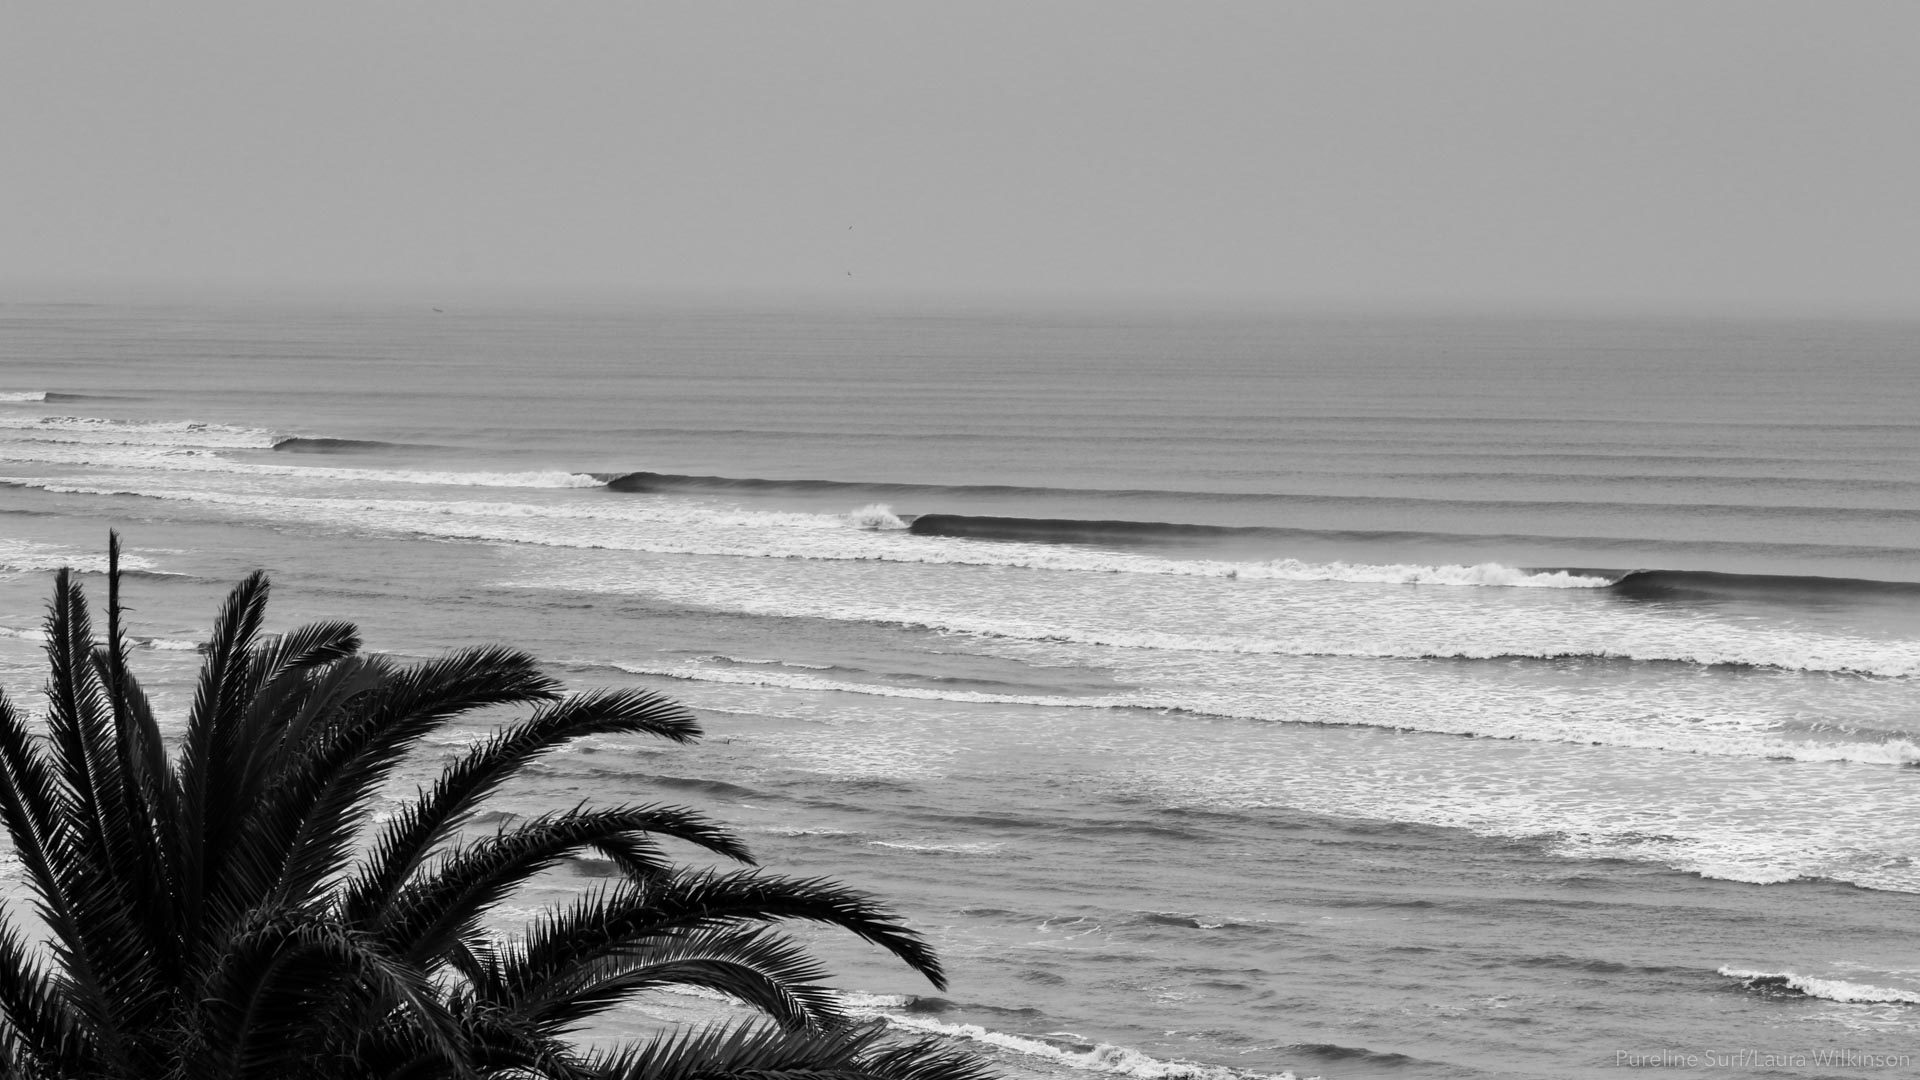 Chicama in black and white. Get the longest wave of your life during a worldwide surf coaching trip with Pureline Surf.